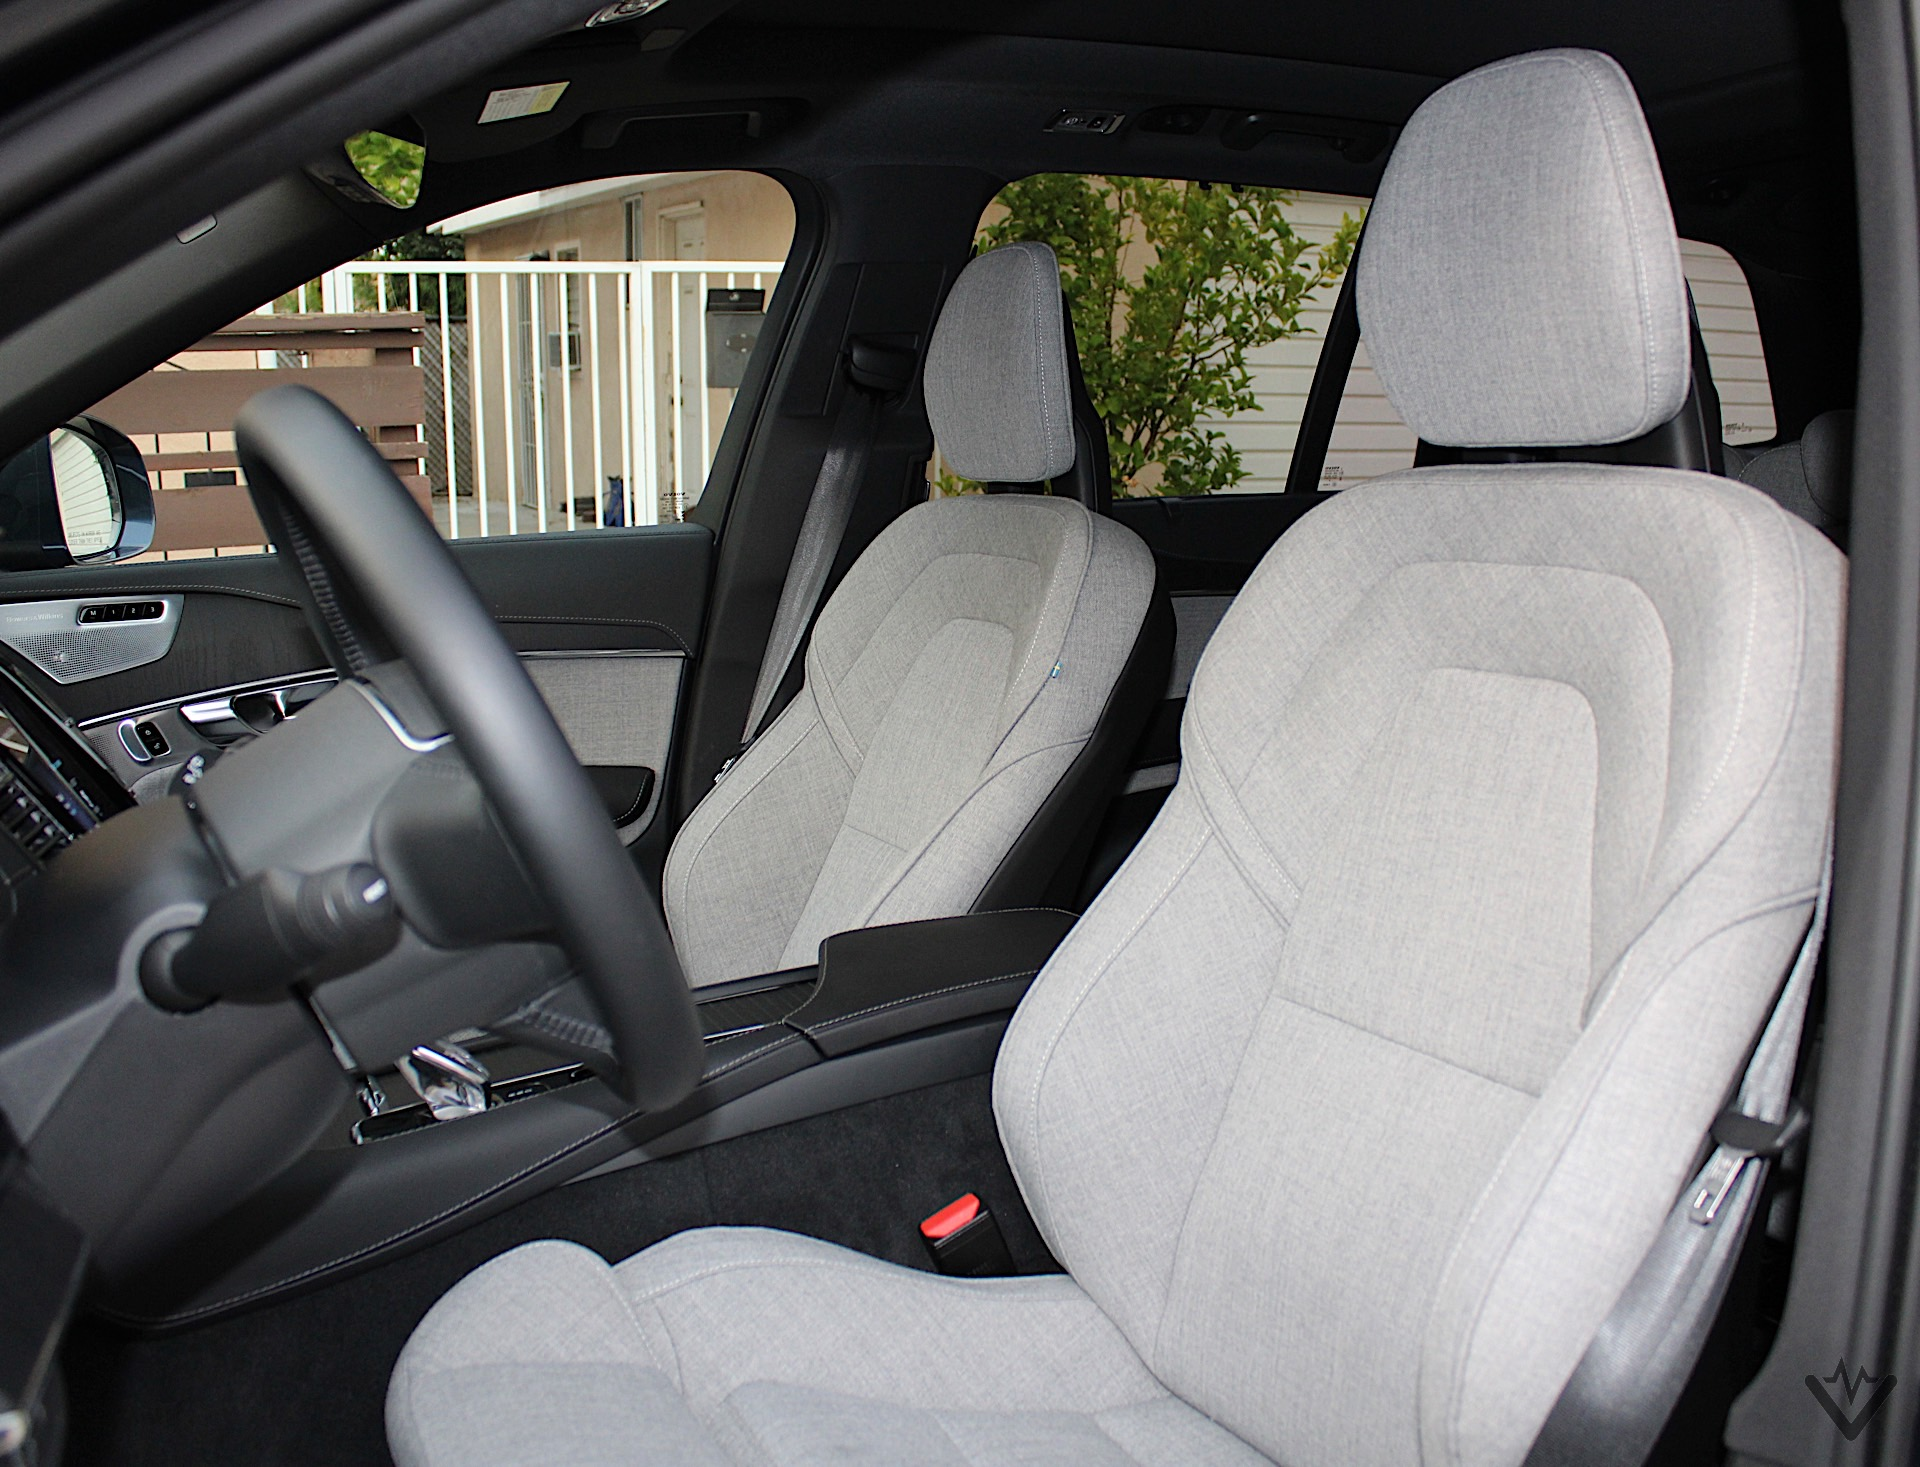 2021 Volvo XC90 T8 Recharge front seats 01 1